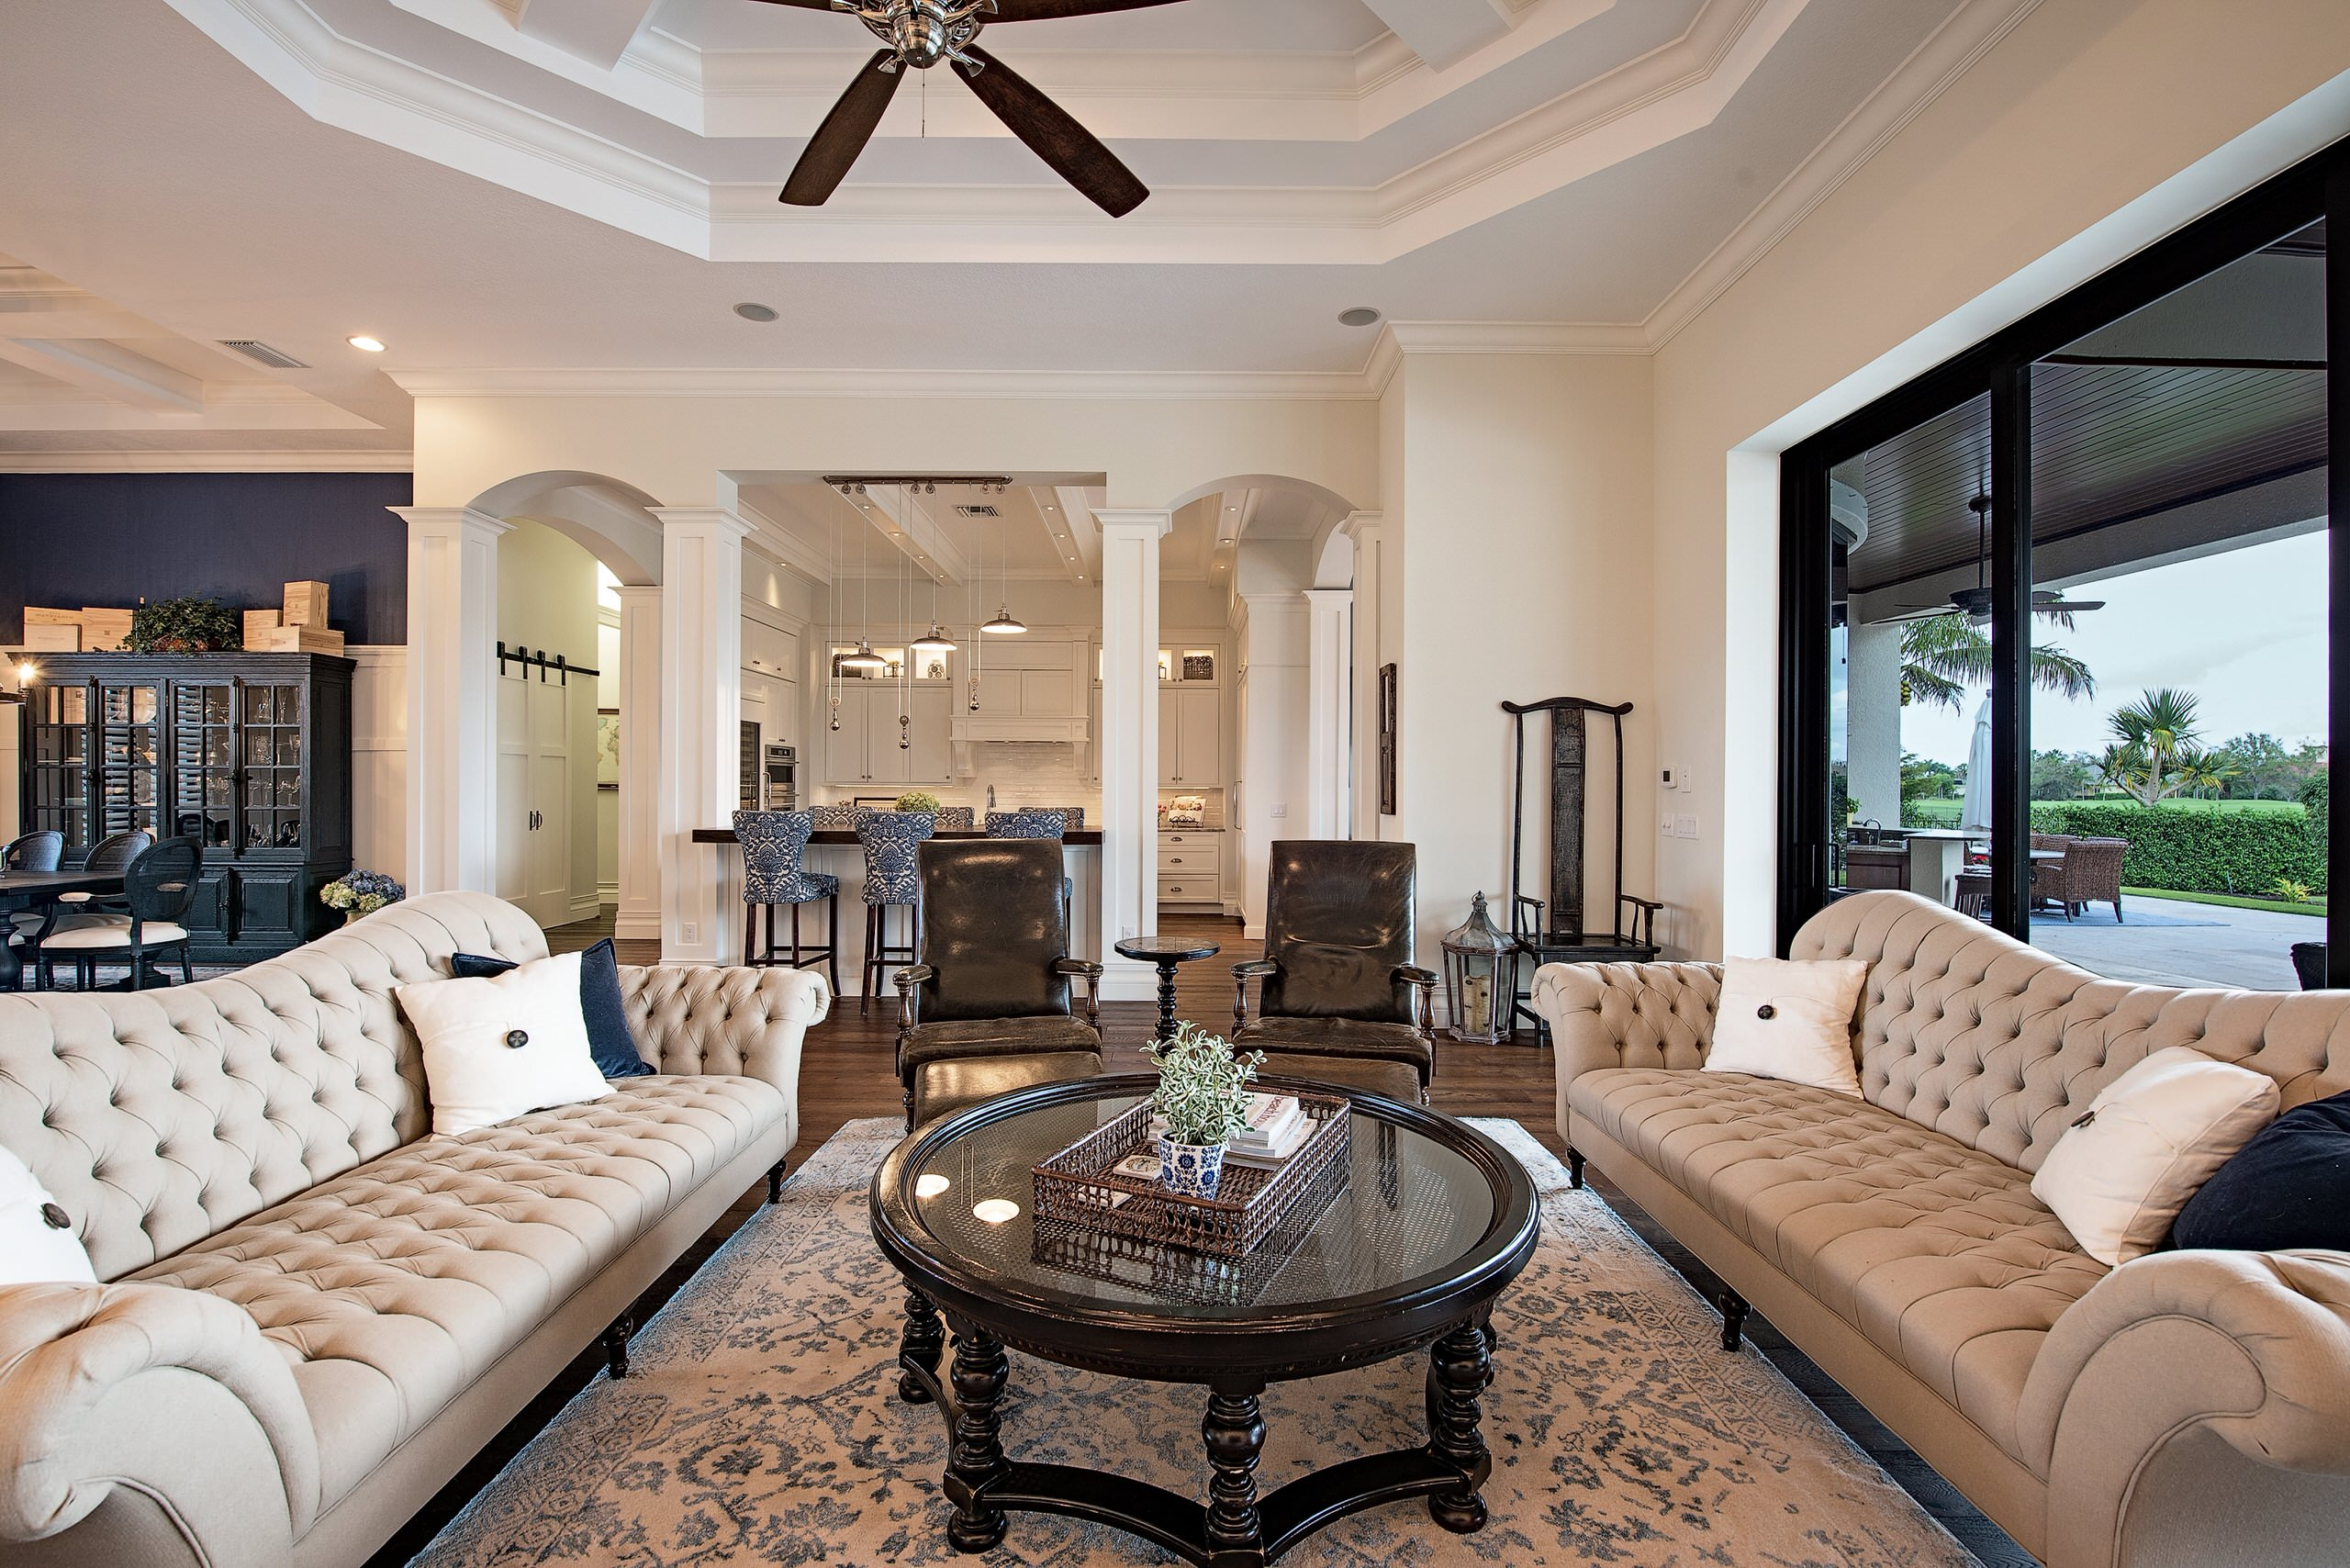 Certified Luxury Builders-41 West-Naples,FL-Quail Remodel 3A